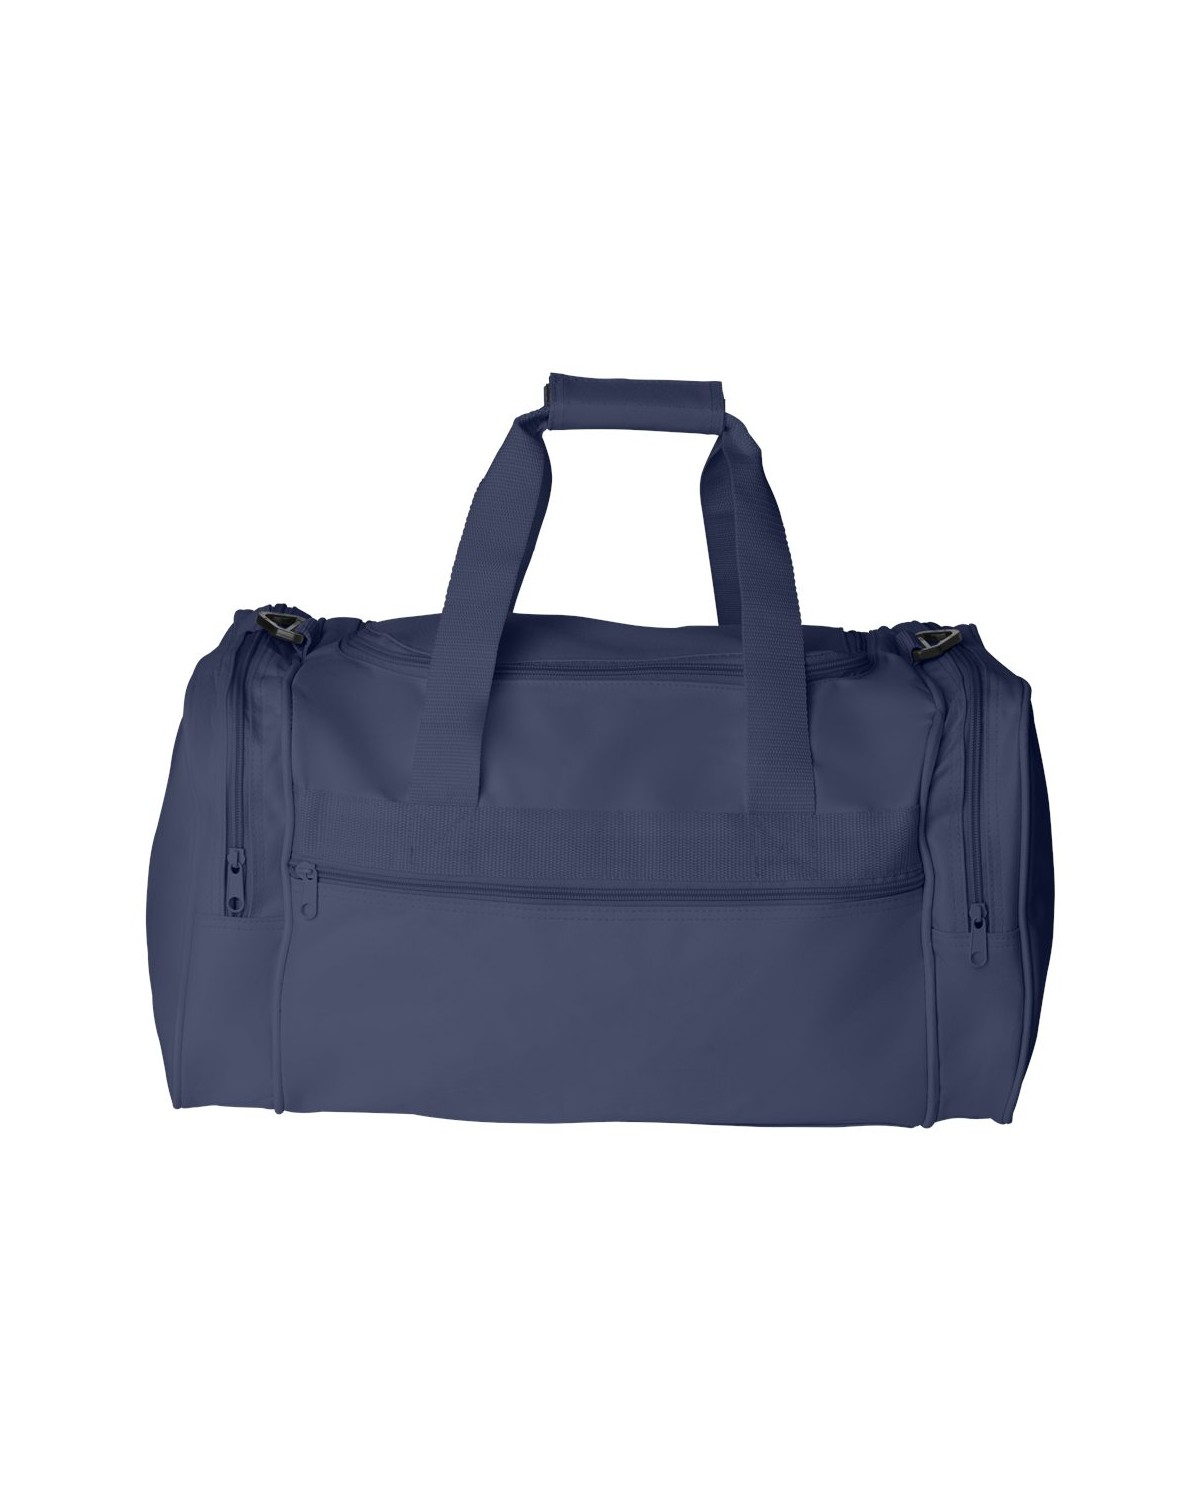 OAD111 Liberty Bags ONE